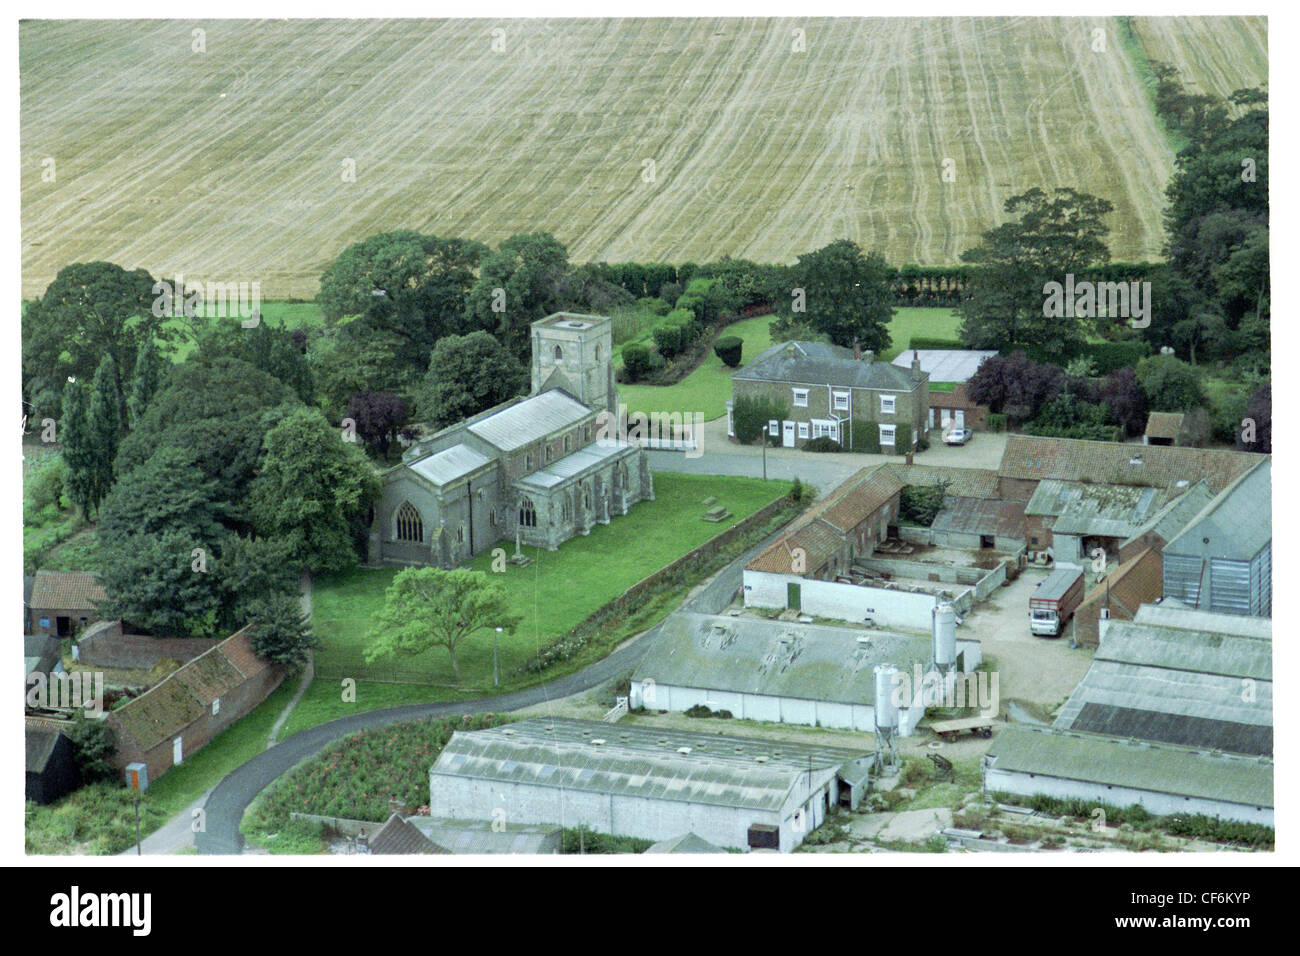 Oblique Aerial Photograph Of Part The Village Thorngumbald In East Yorkshire Taken Late Summer